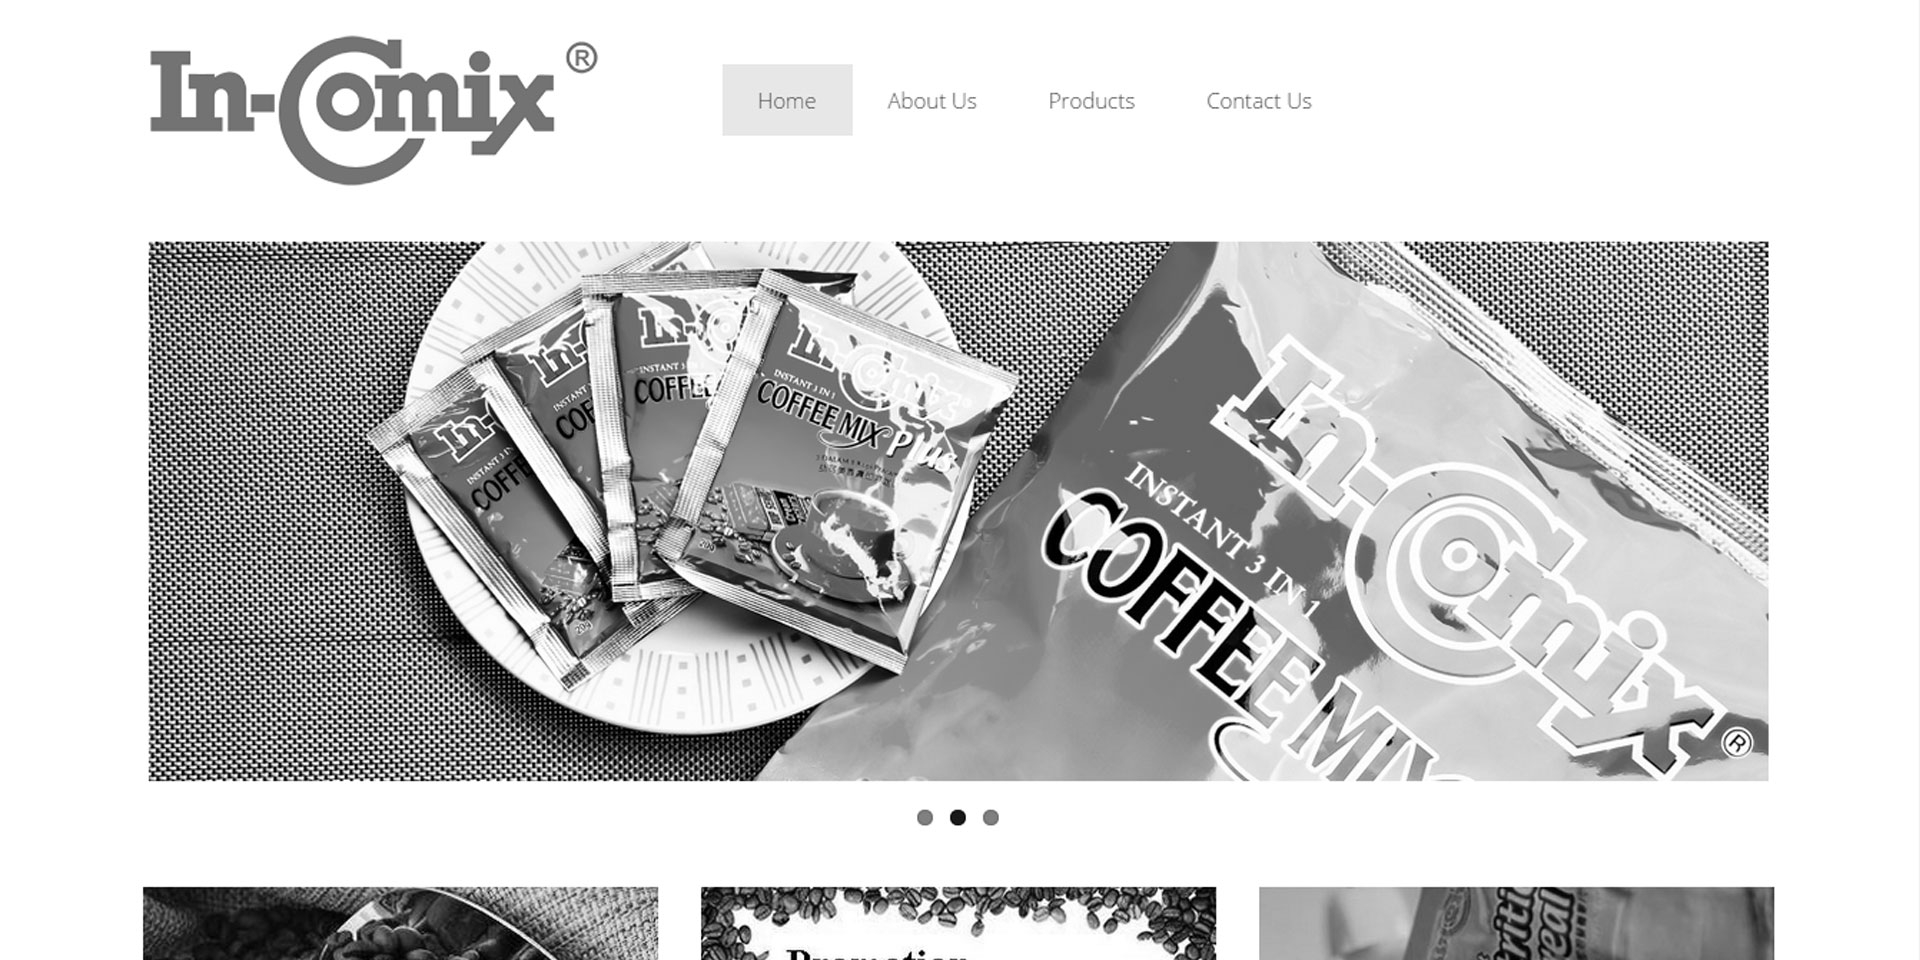 In-Comix Food Industries Sdn Bhd